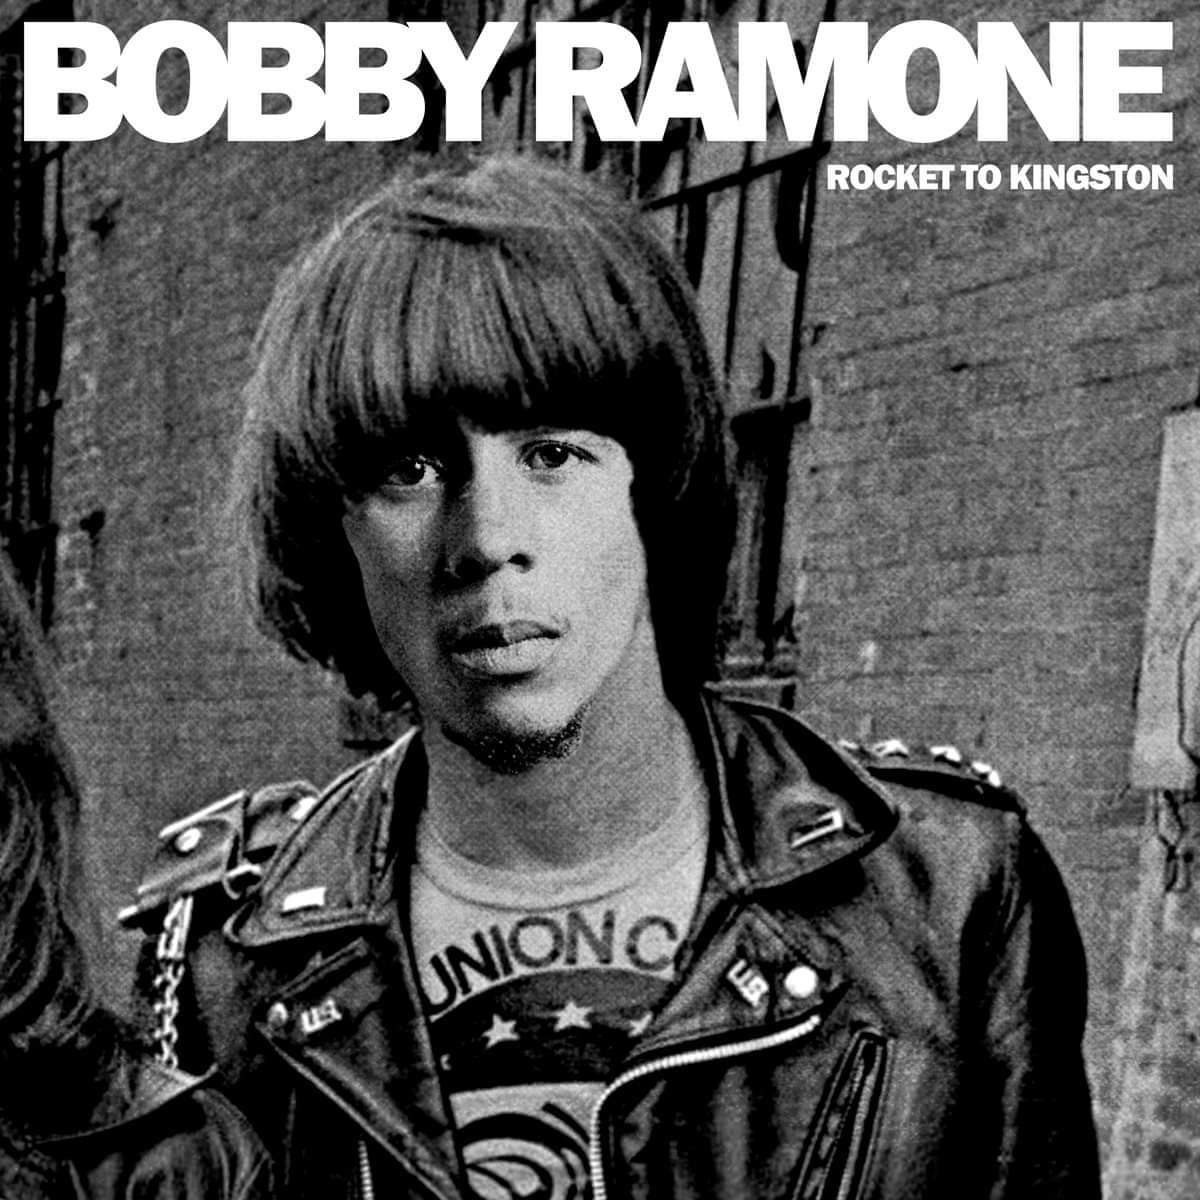 Bobby Ramone - Rocket to Kingston